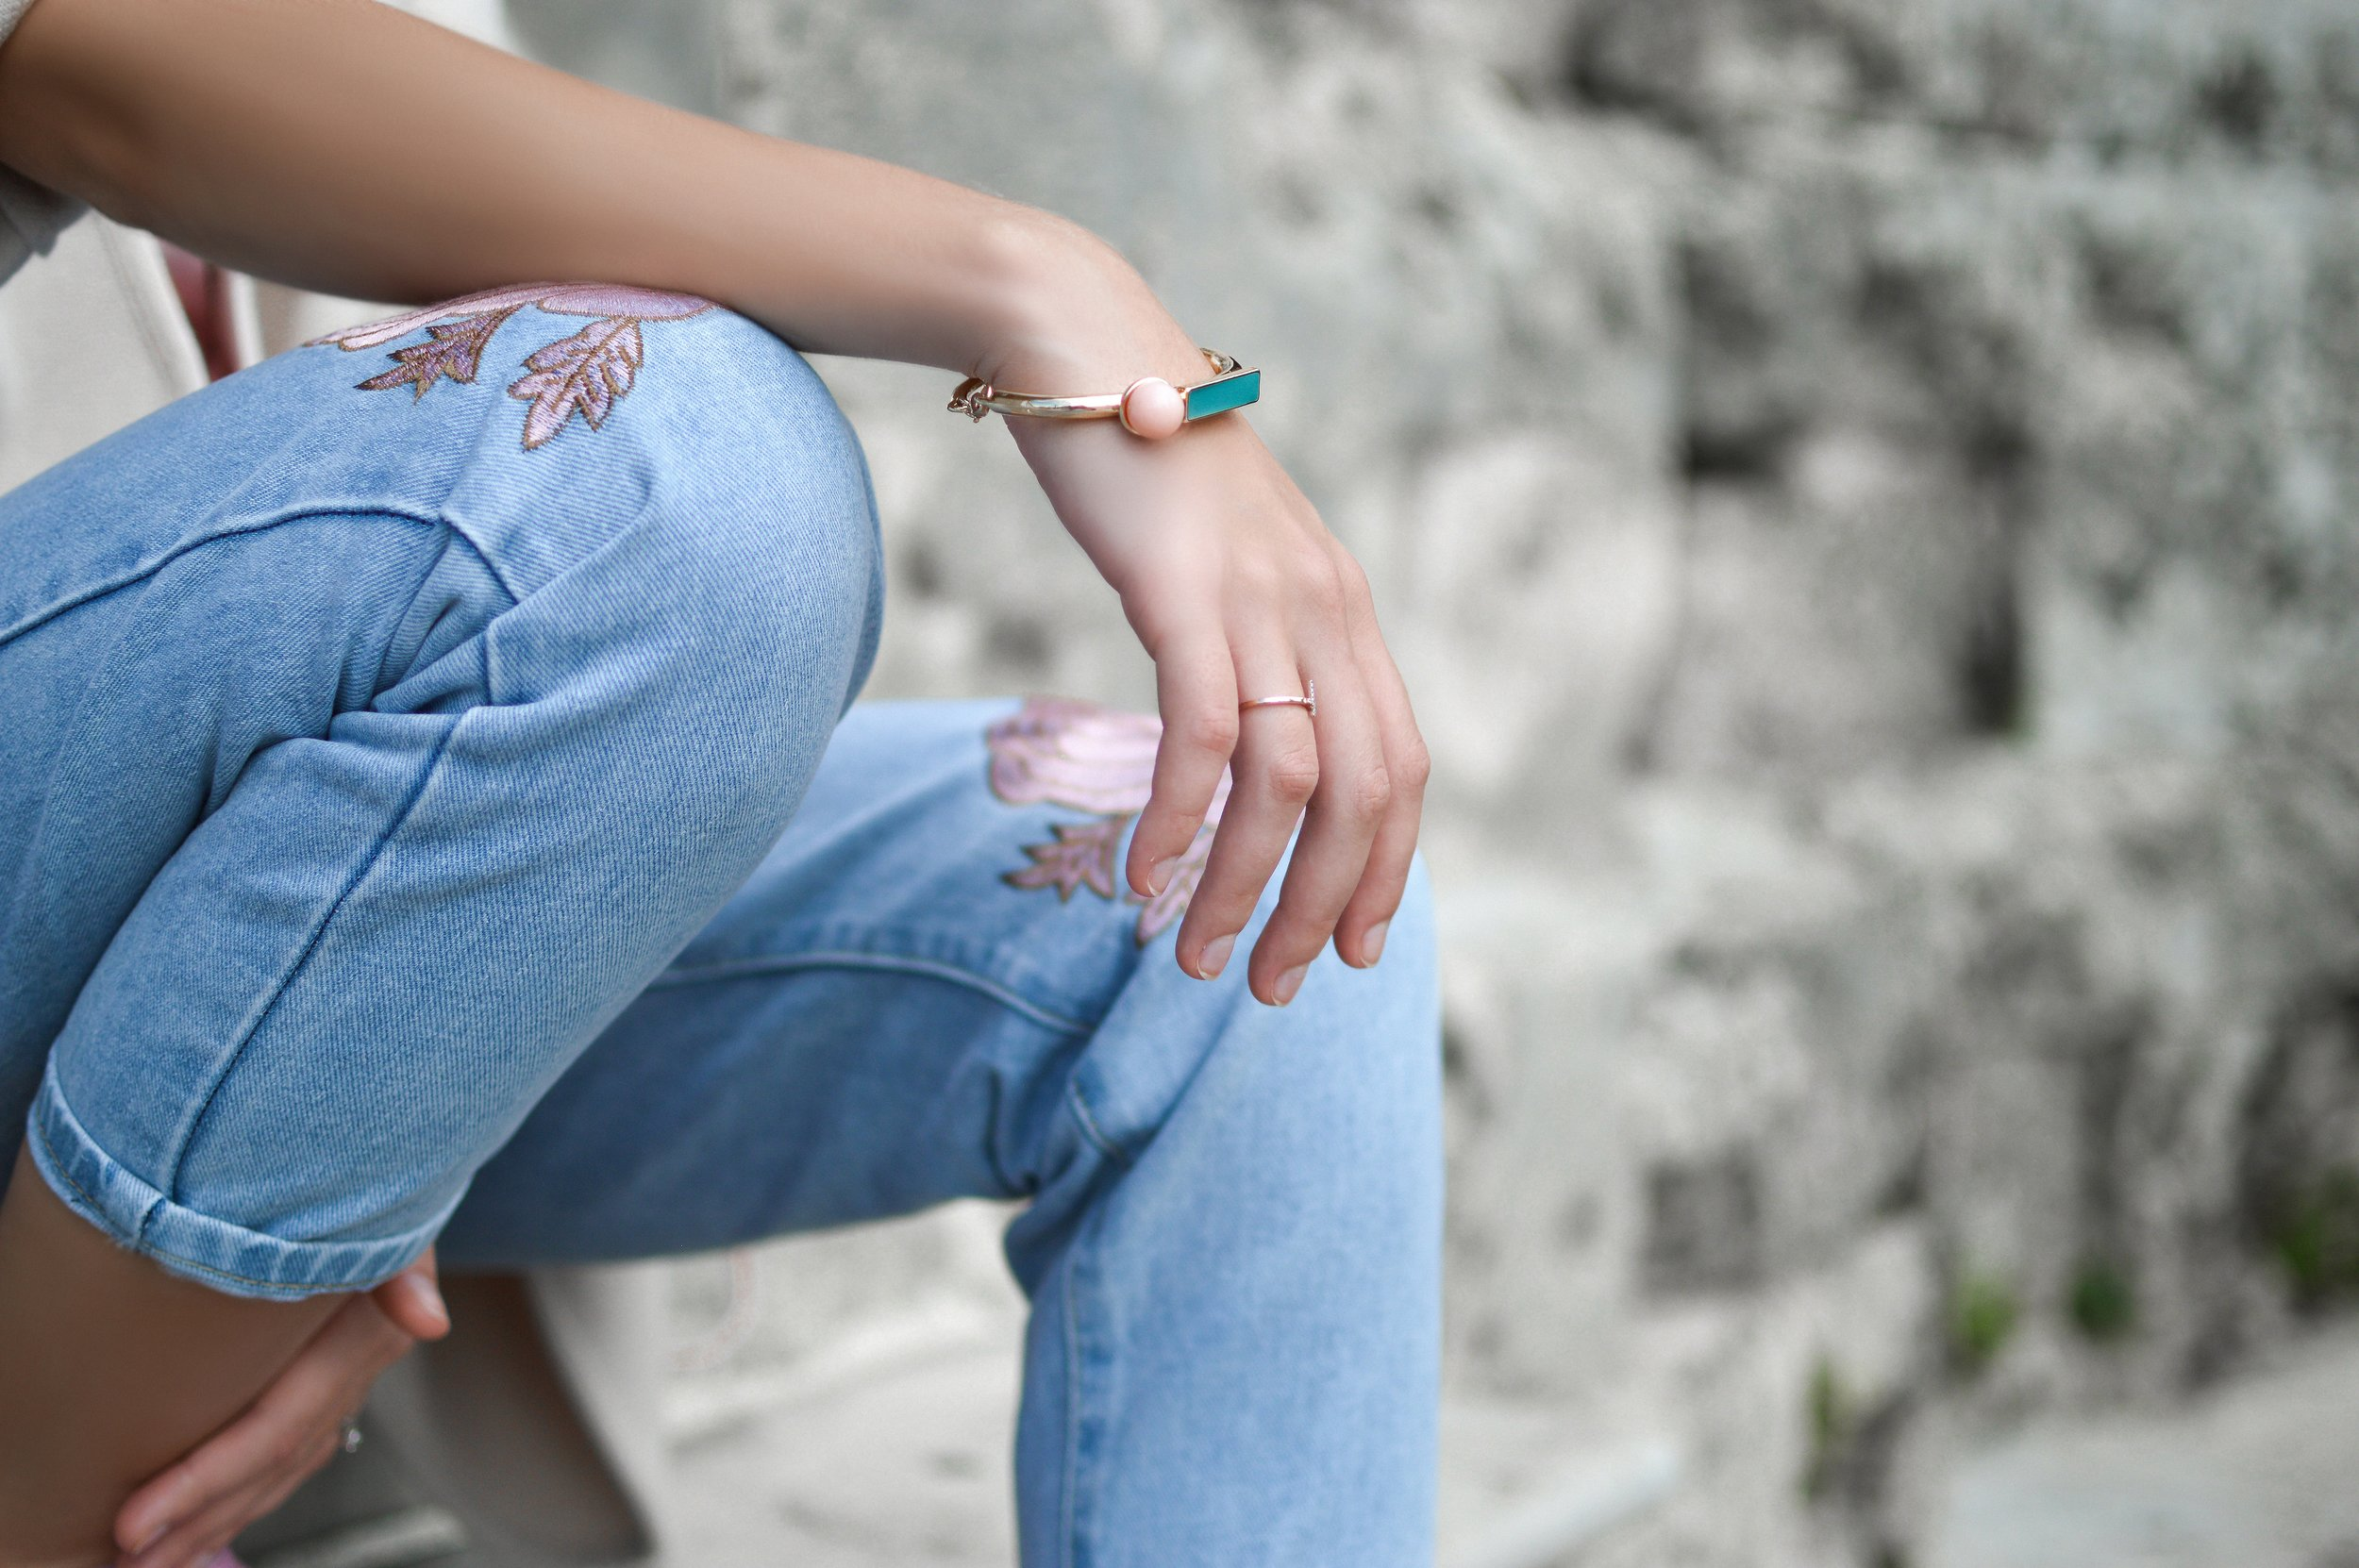 woman sitting down, resting her arm on her knee, and wearing embroidered blue jeans and a gold and turquoise bracelet